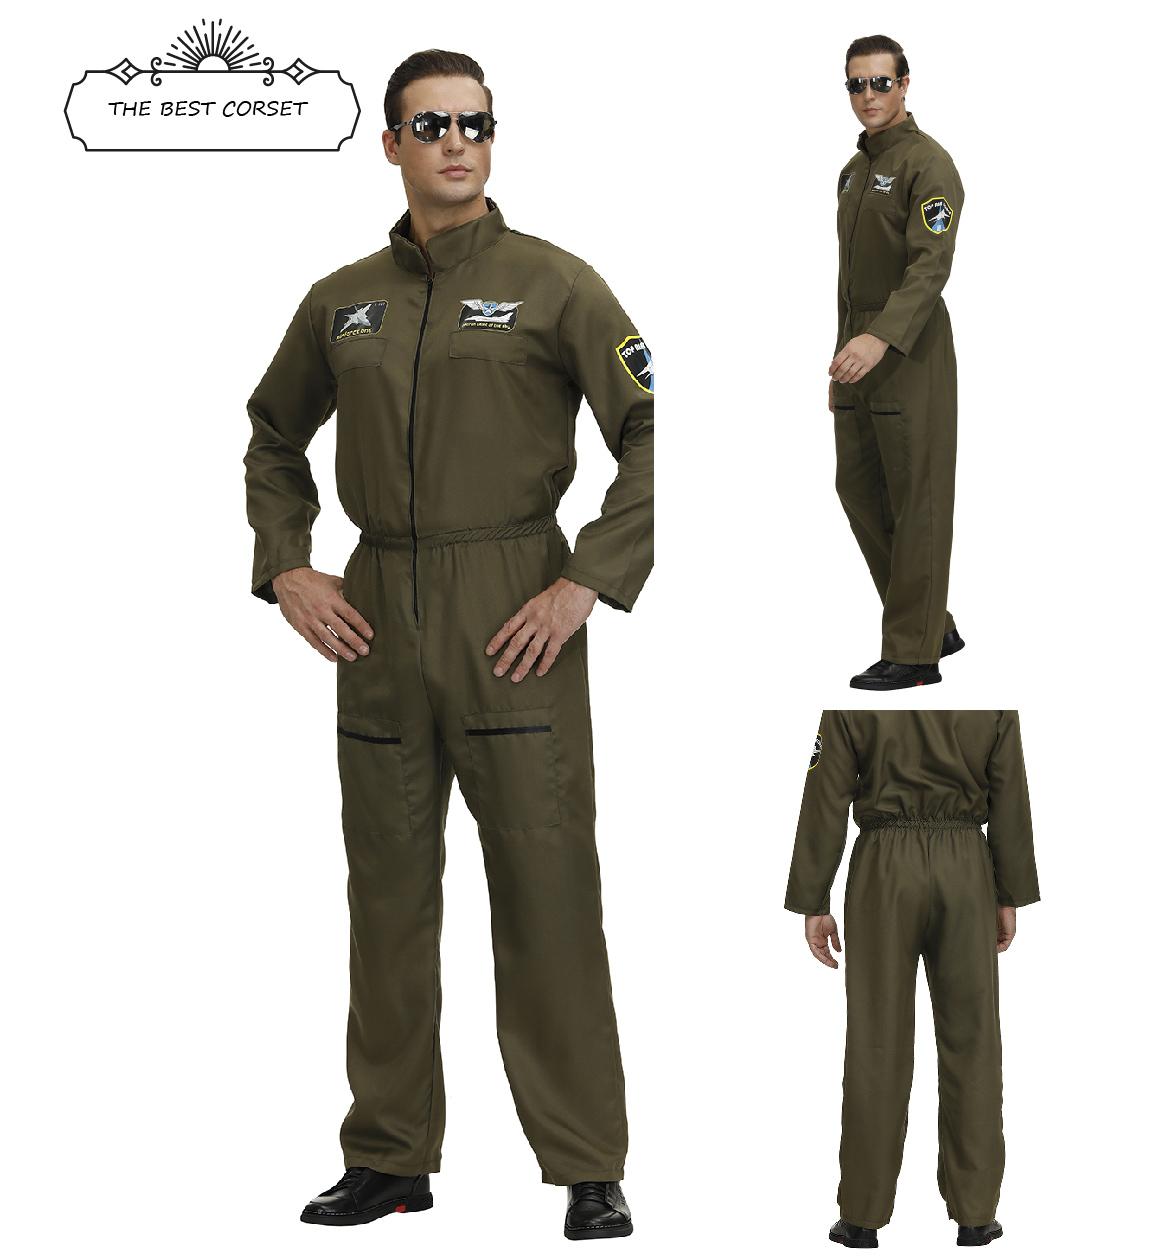 Flight Suit Uniform Fighter Pilot Costume Top Gun Cosplay JumpsuitZipper Clothing Halloween Party Role Playsuit Coveralls Adult